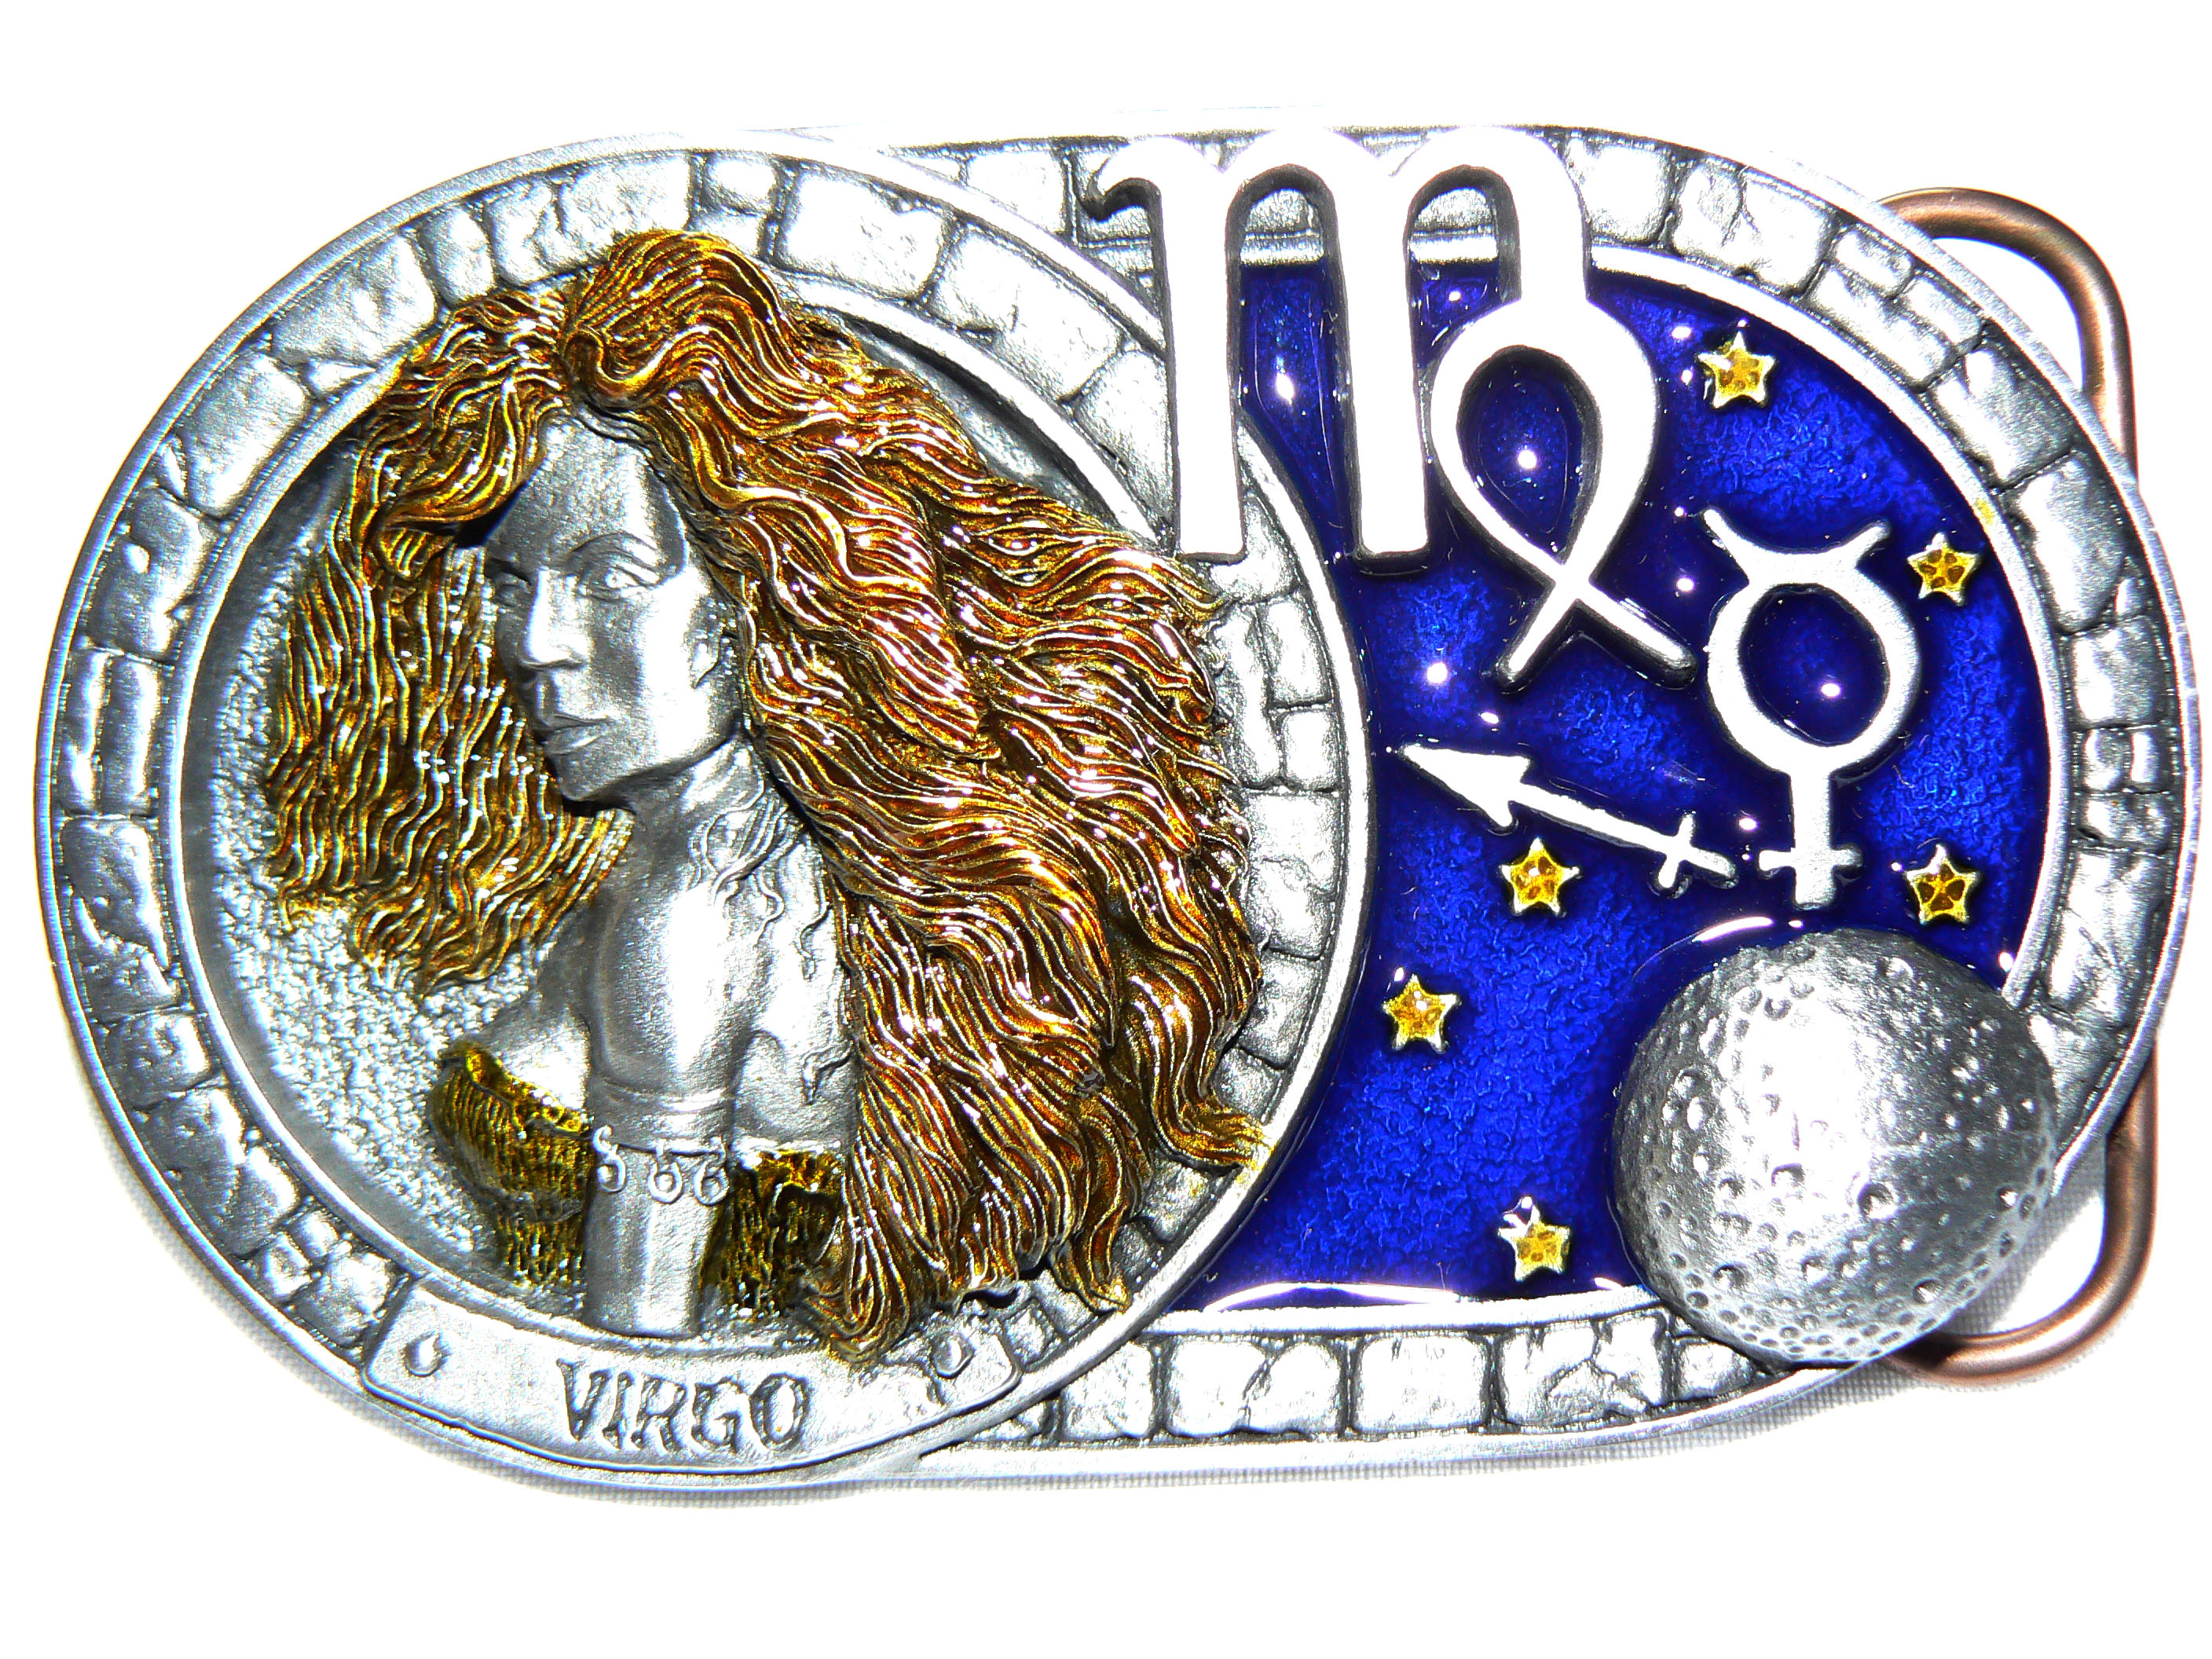 Virgo Belt Buckle